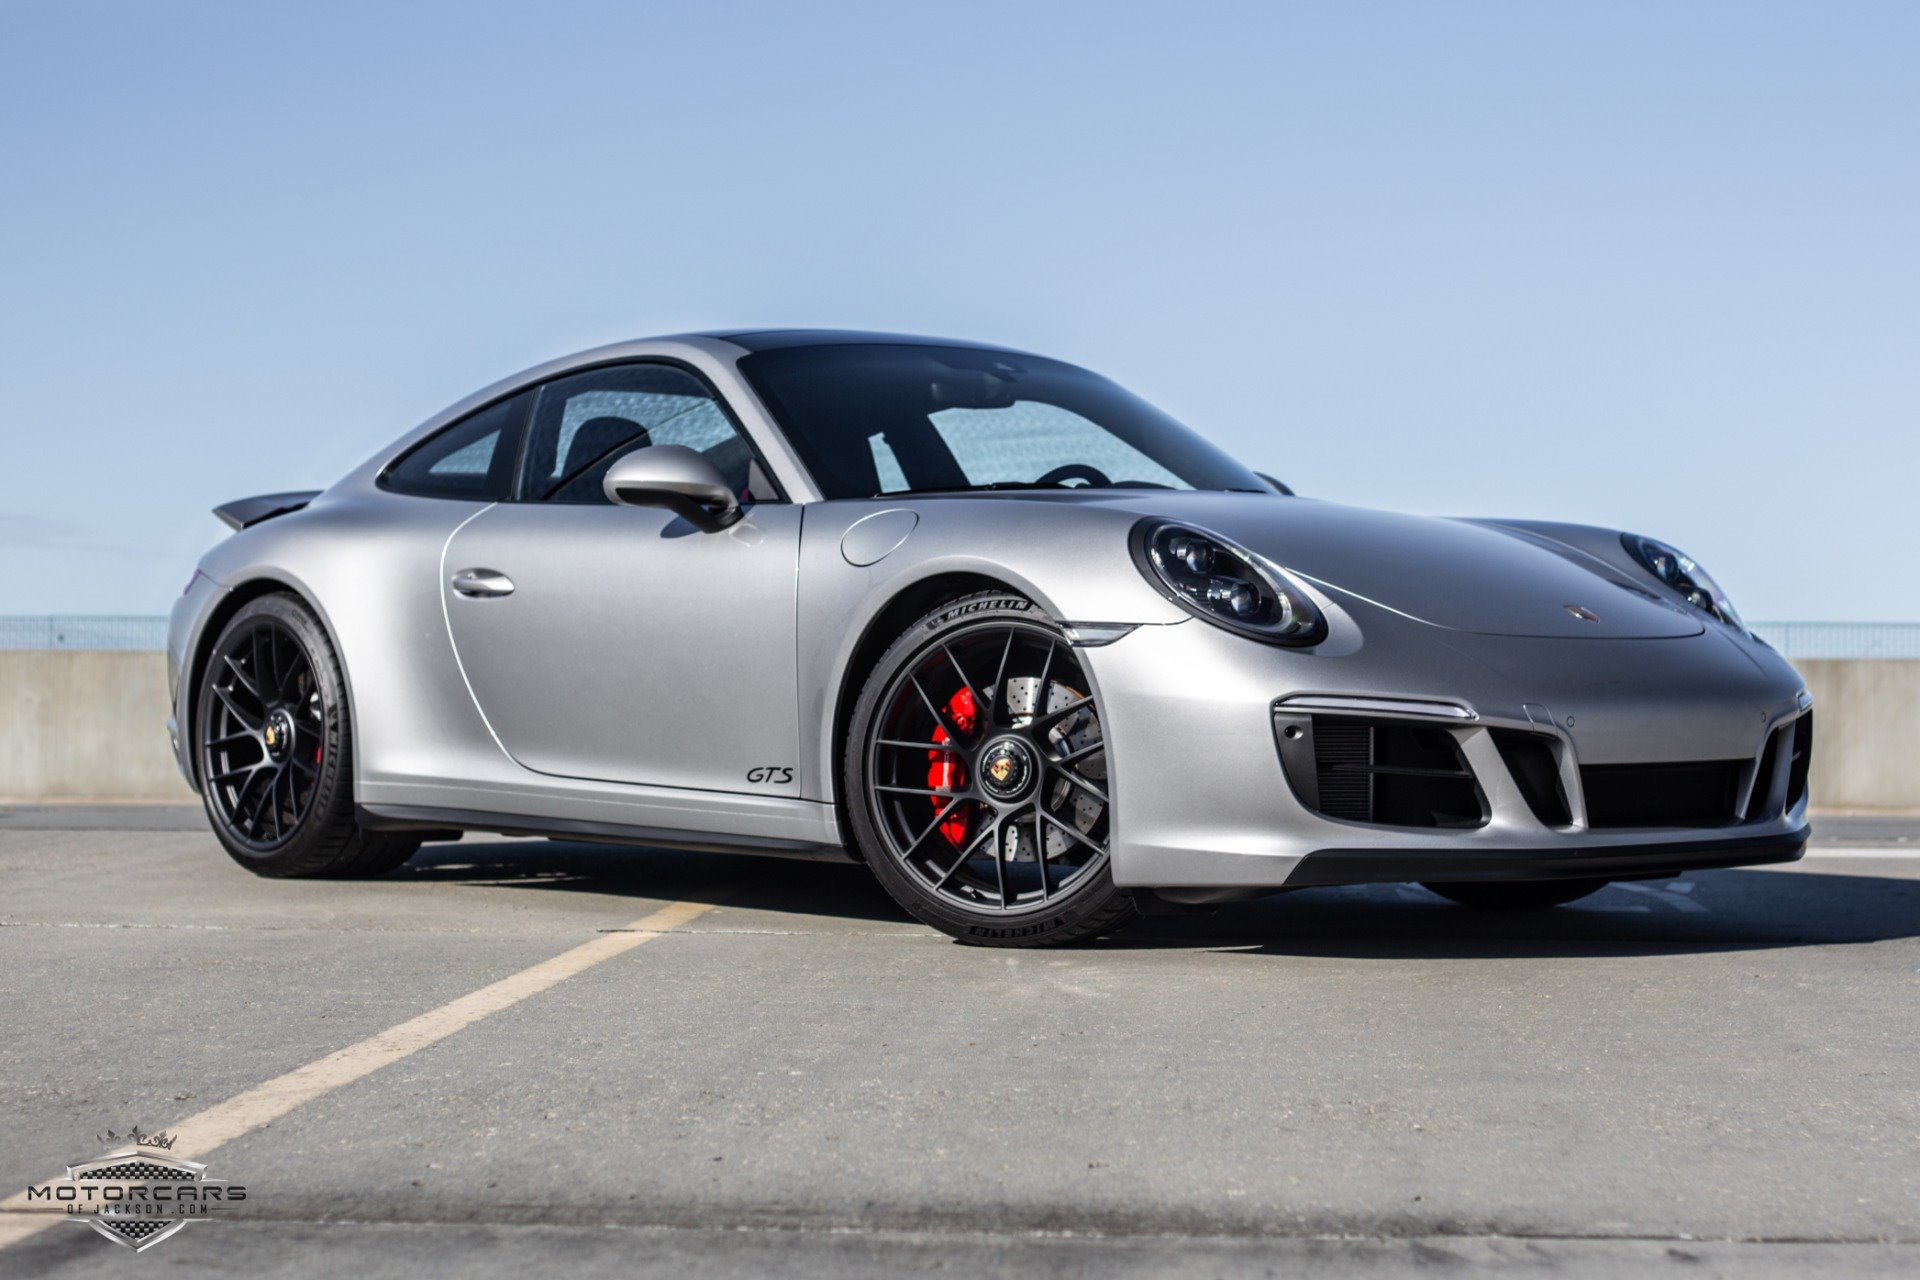 New 2020 Porsche-911 Carrera S 911 Carrera S for sale $126,100 at M and V Leasing in Brooklyn NY 11223 1